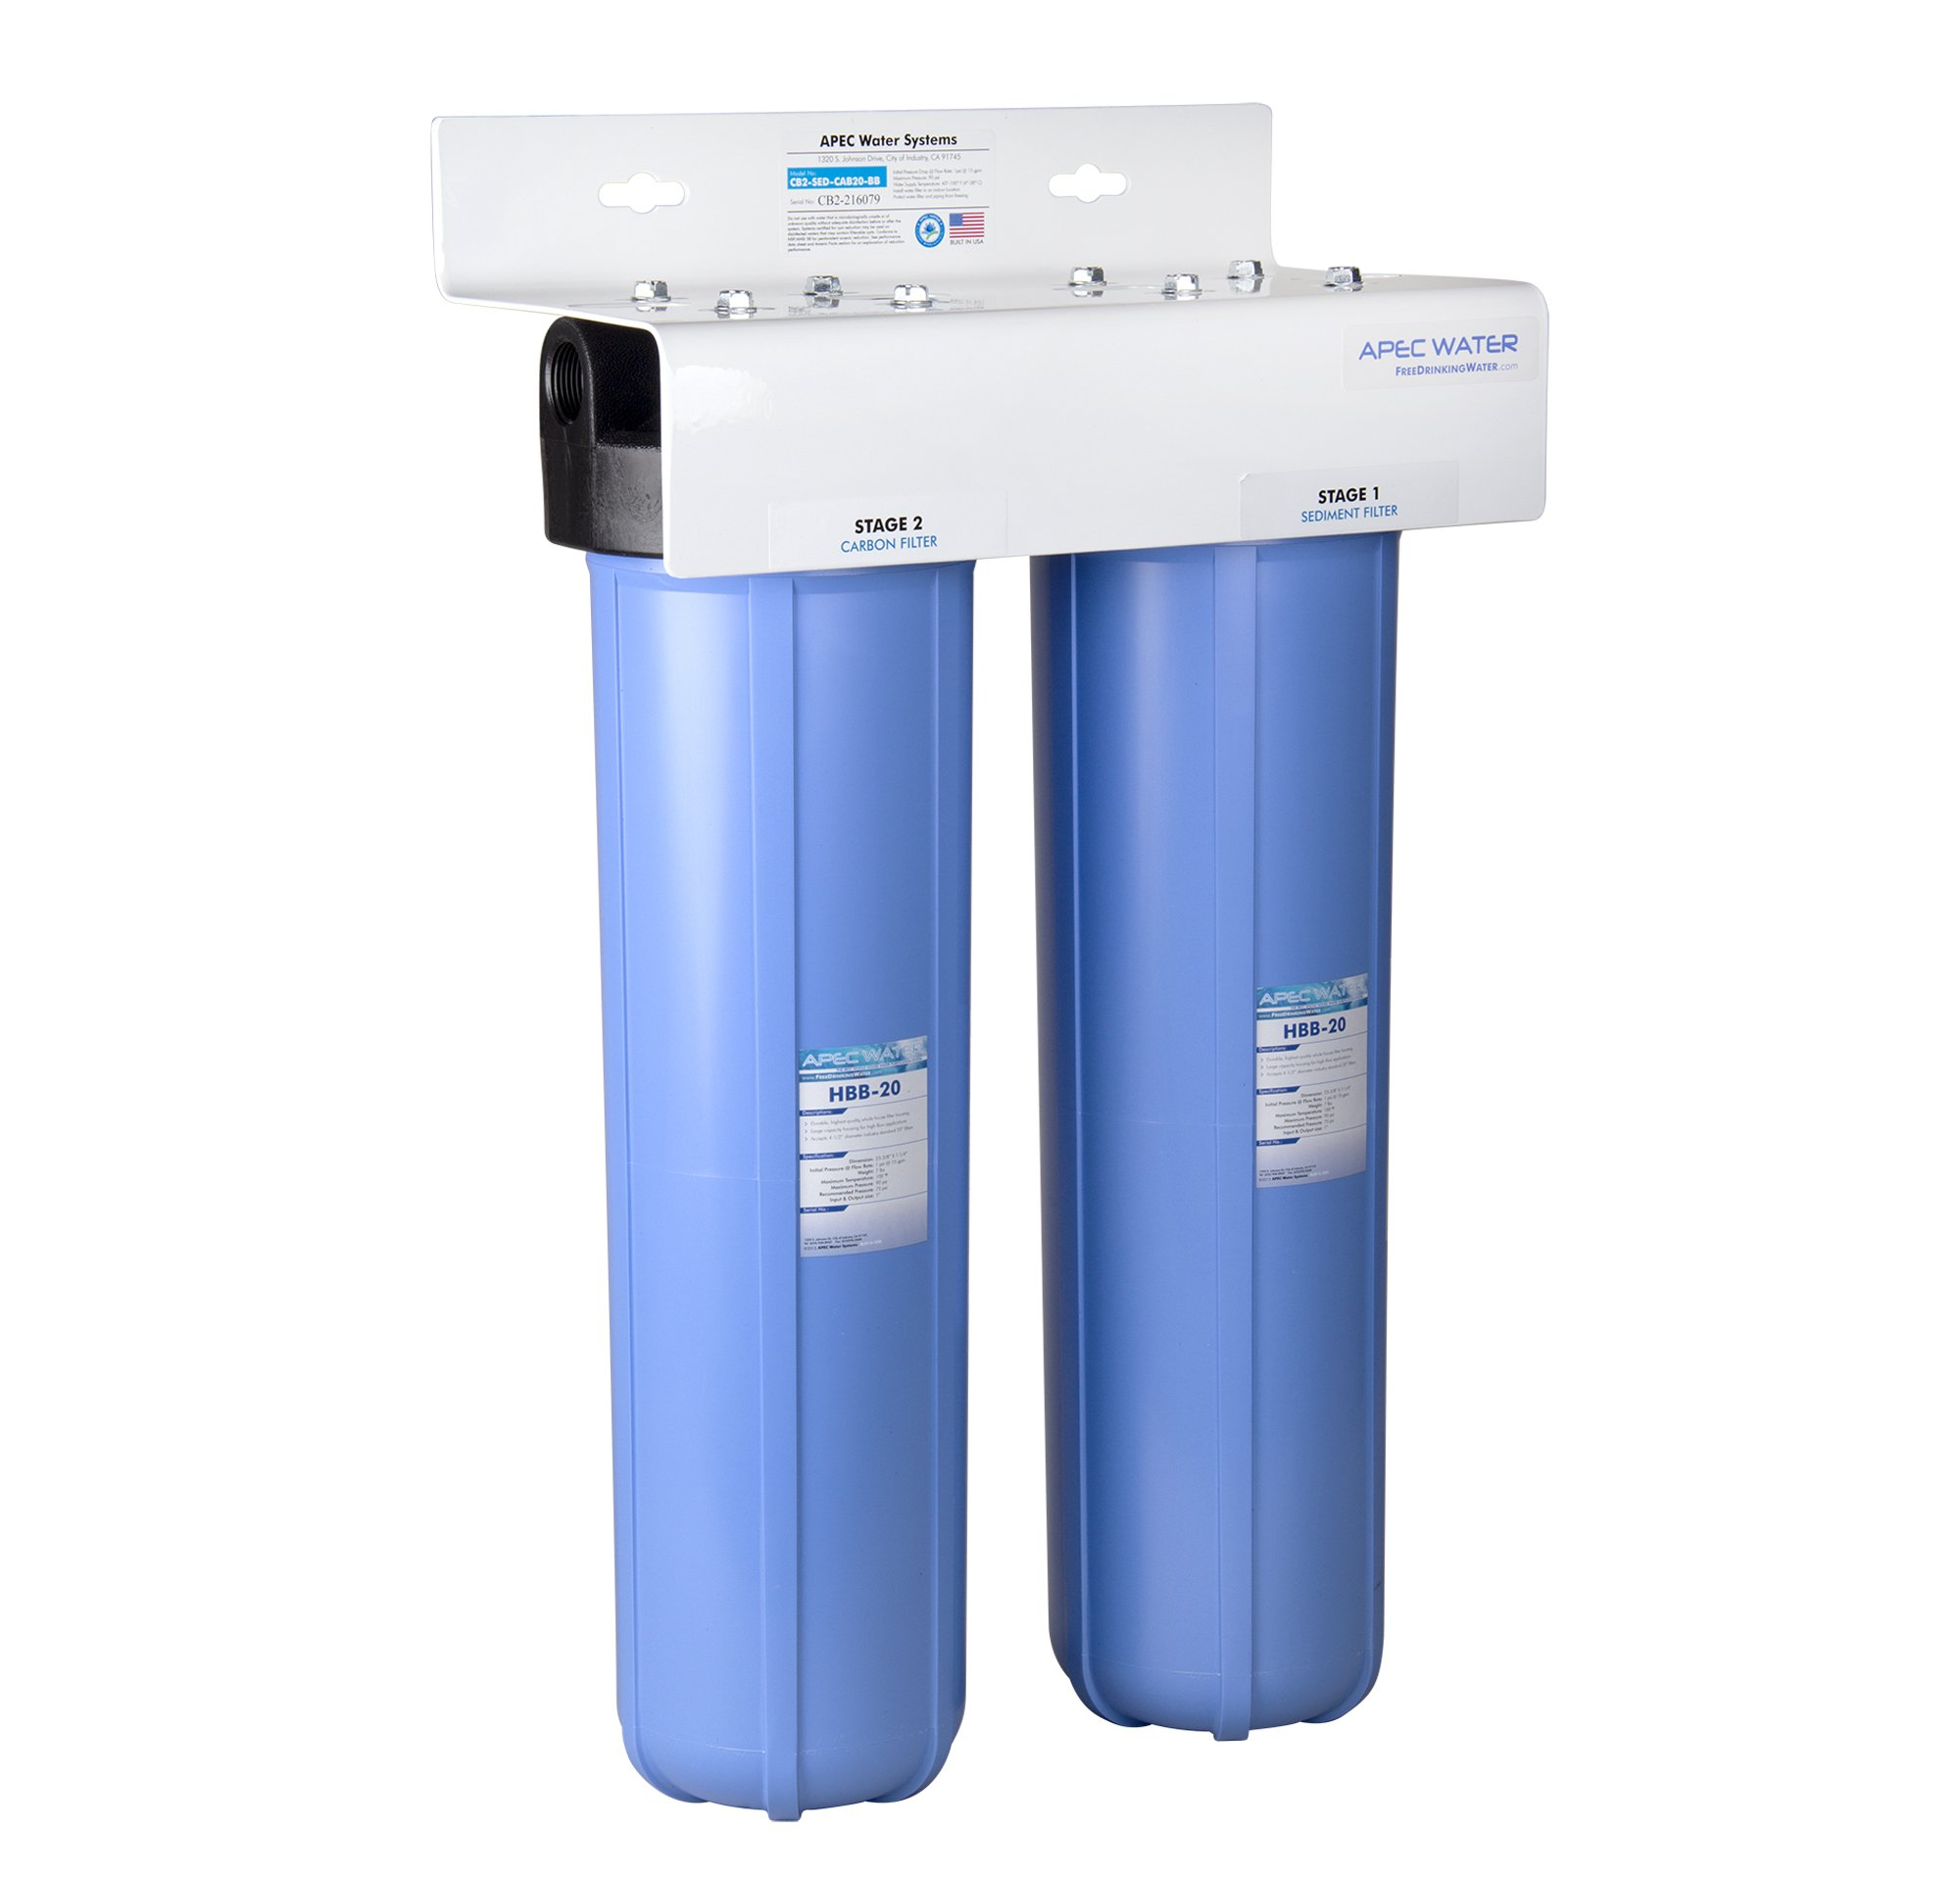 APEC 2-Stage Whole House Water Filter System with Sediment and Carbon Filters (CB2-SED-CAB20-BB)